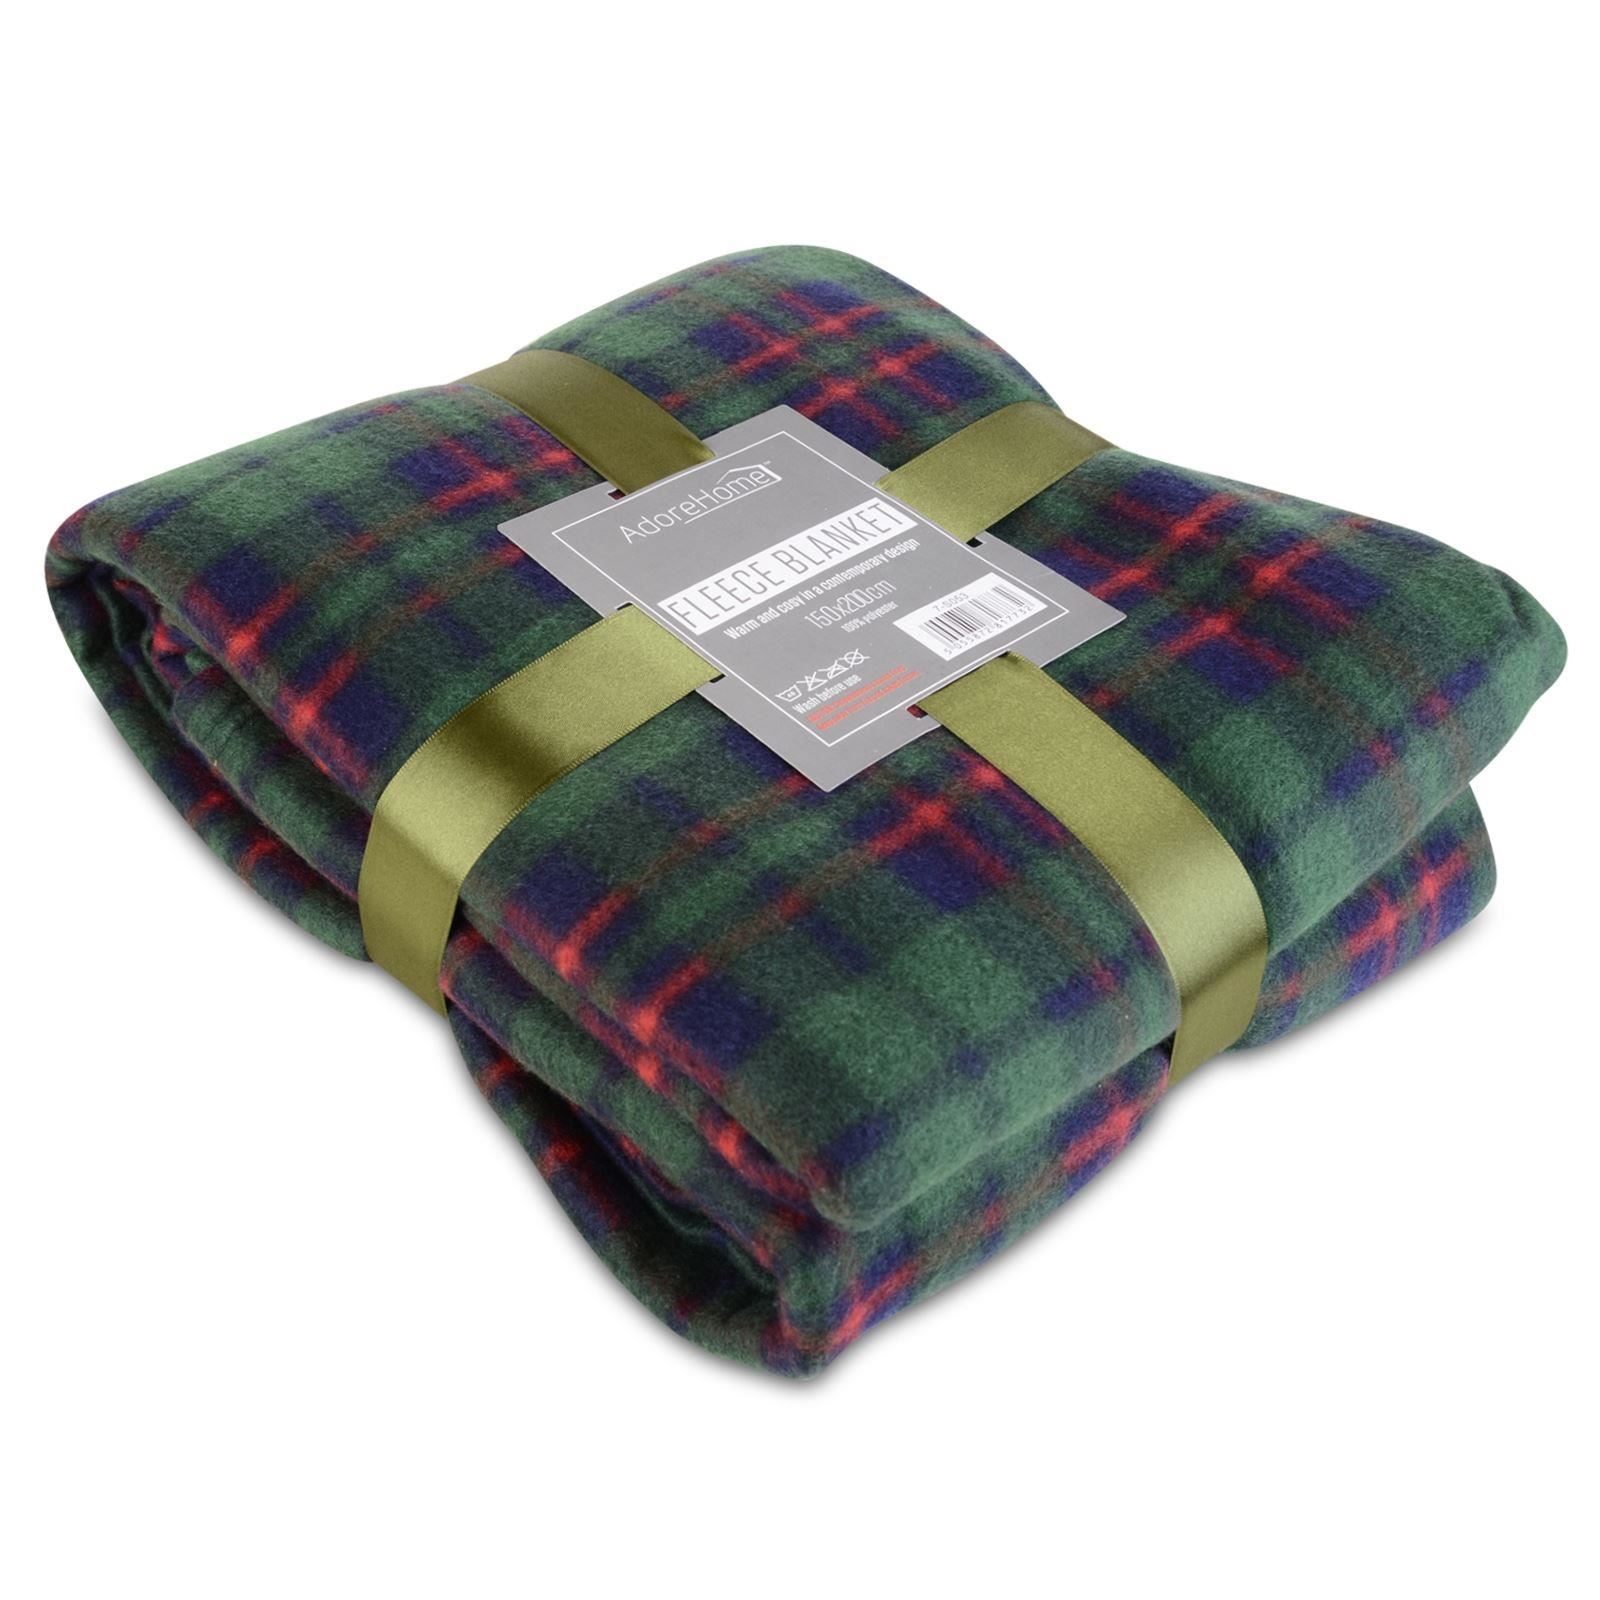 sofa throws uk only best sleeper sofas queen soft and warm single printed fleece blankets for bed